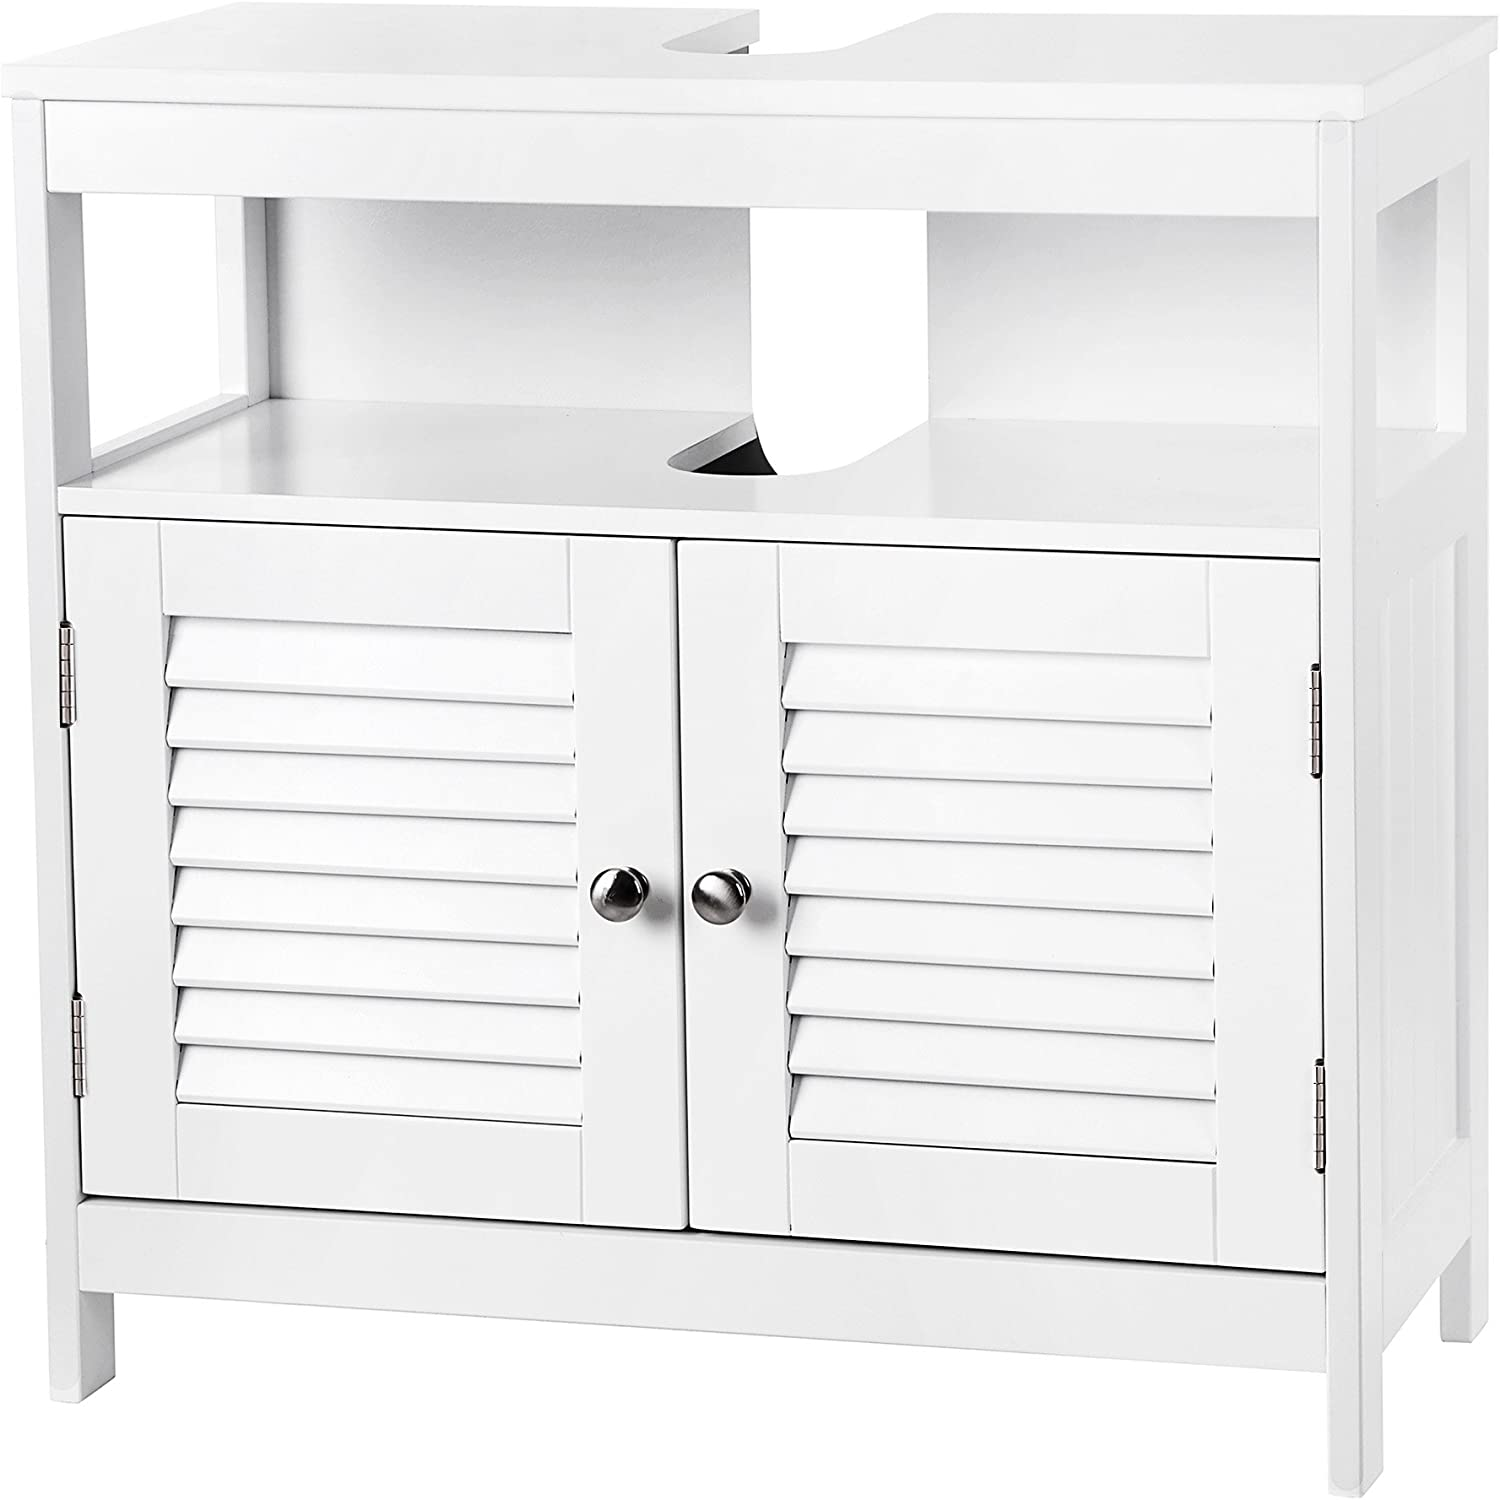 VASAGLE Vanity Unit Without Sink Lots of Storage Space Bathroom Cabinet with Slat Doors 2 White, MDF panels, With Open Compartment, 60 x 30 x 60 cm